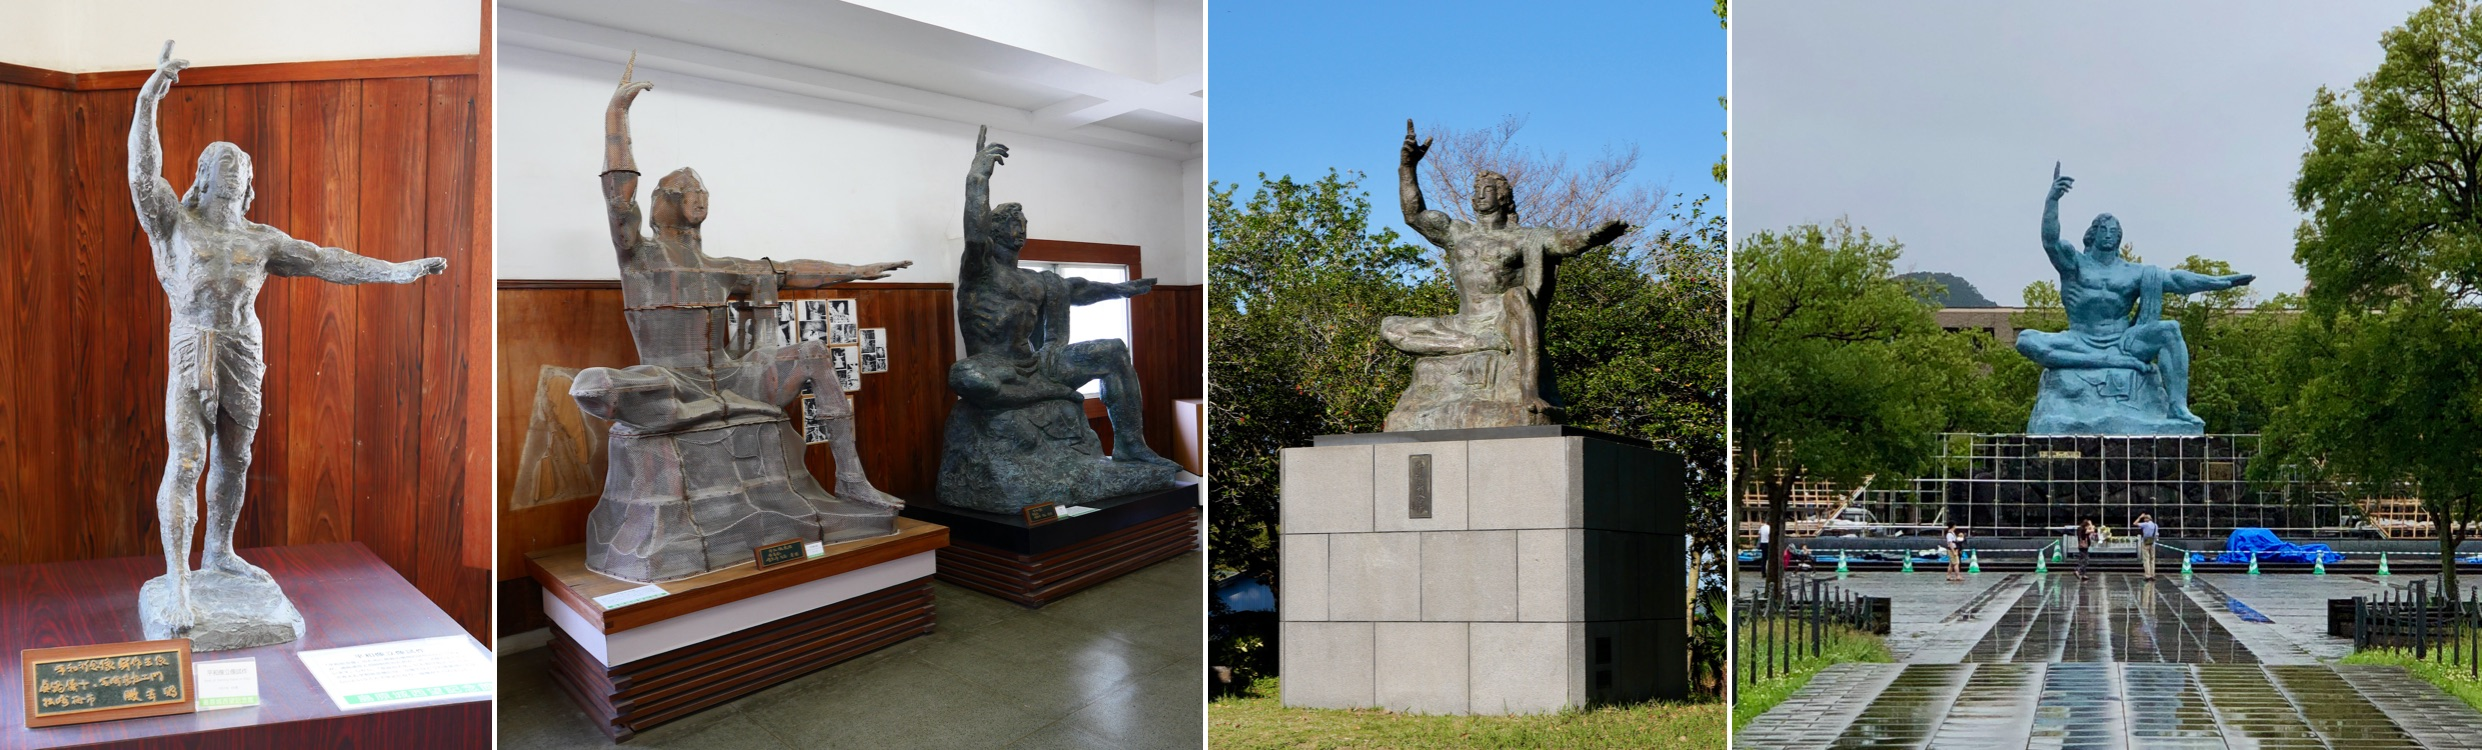 collage of four images showing various versions of the same statue